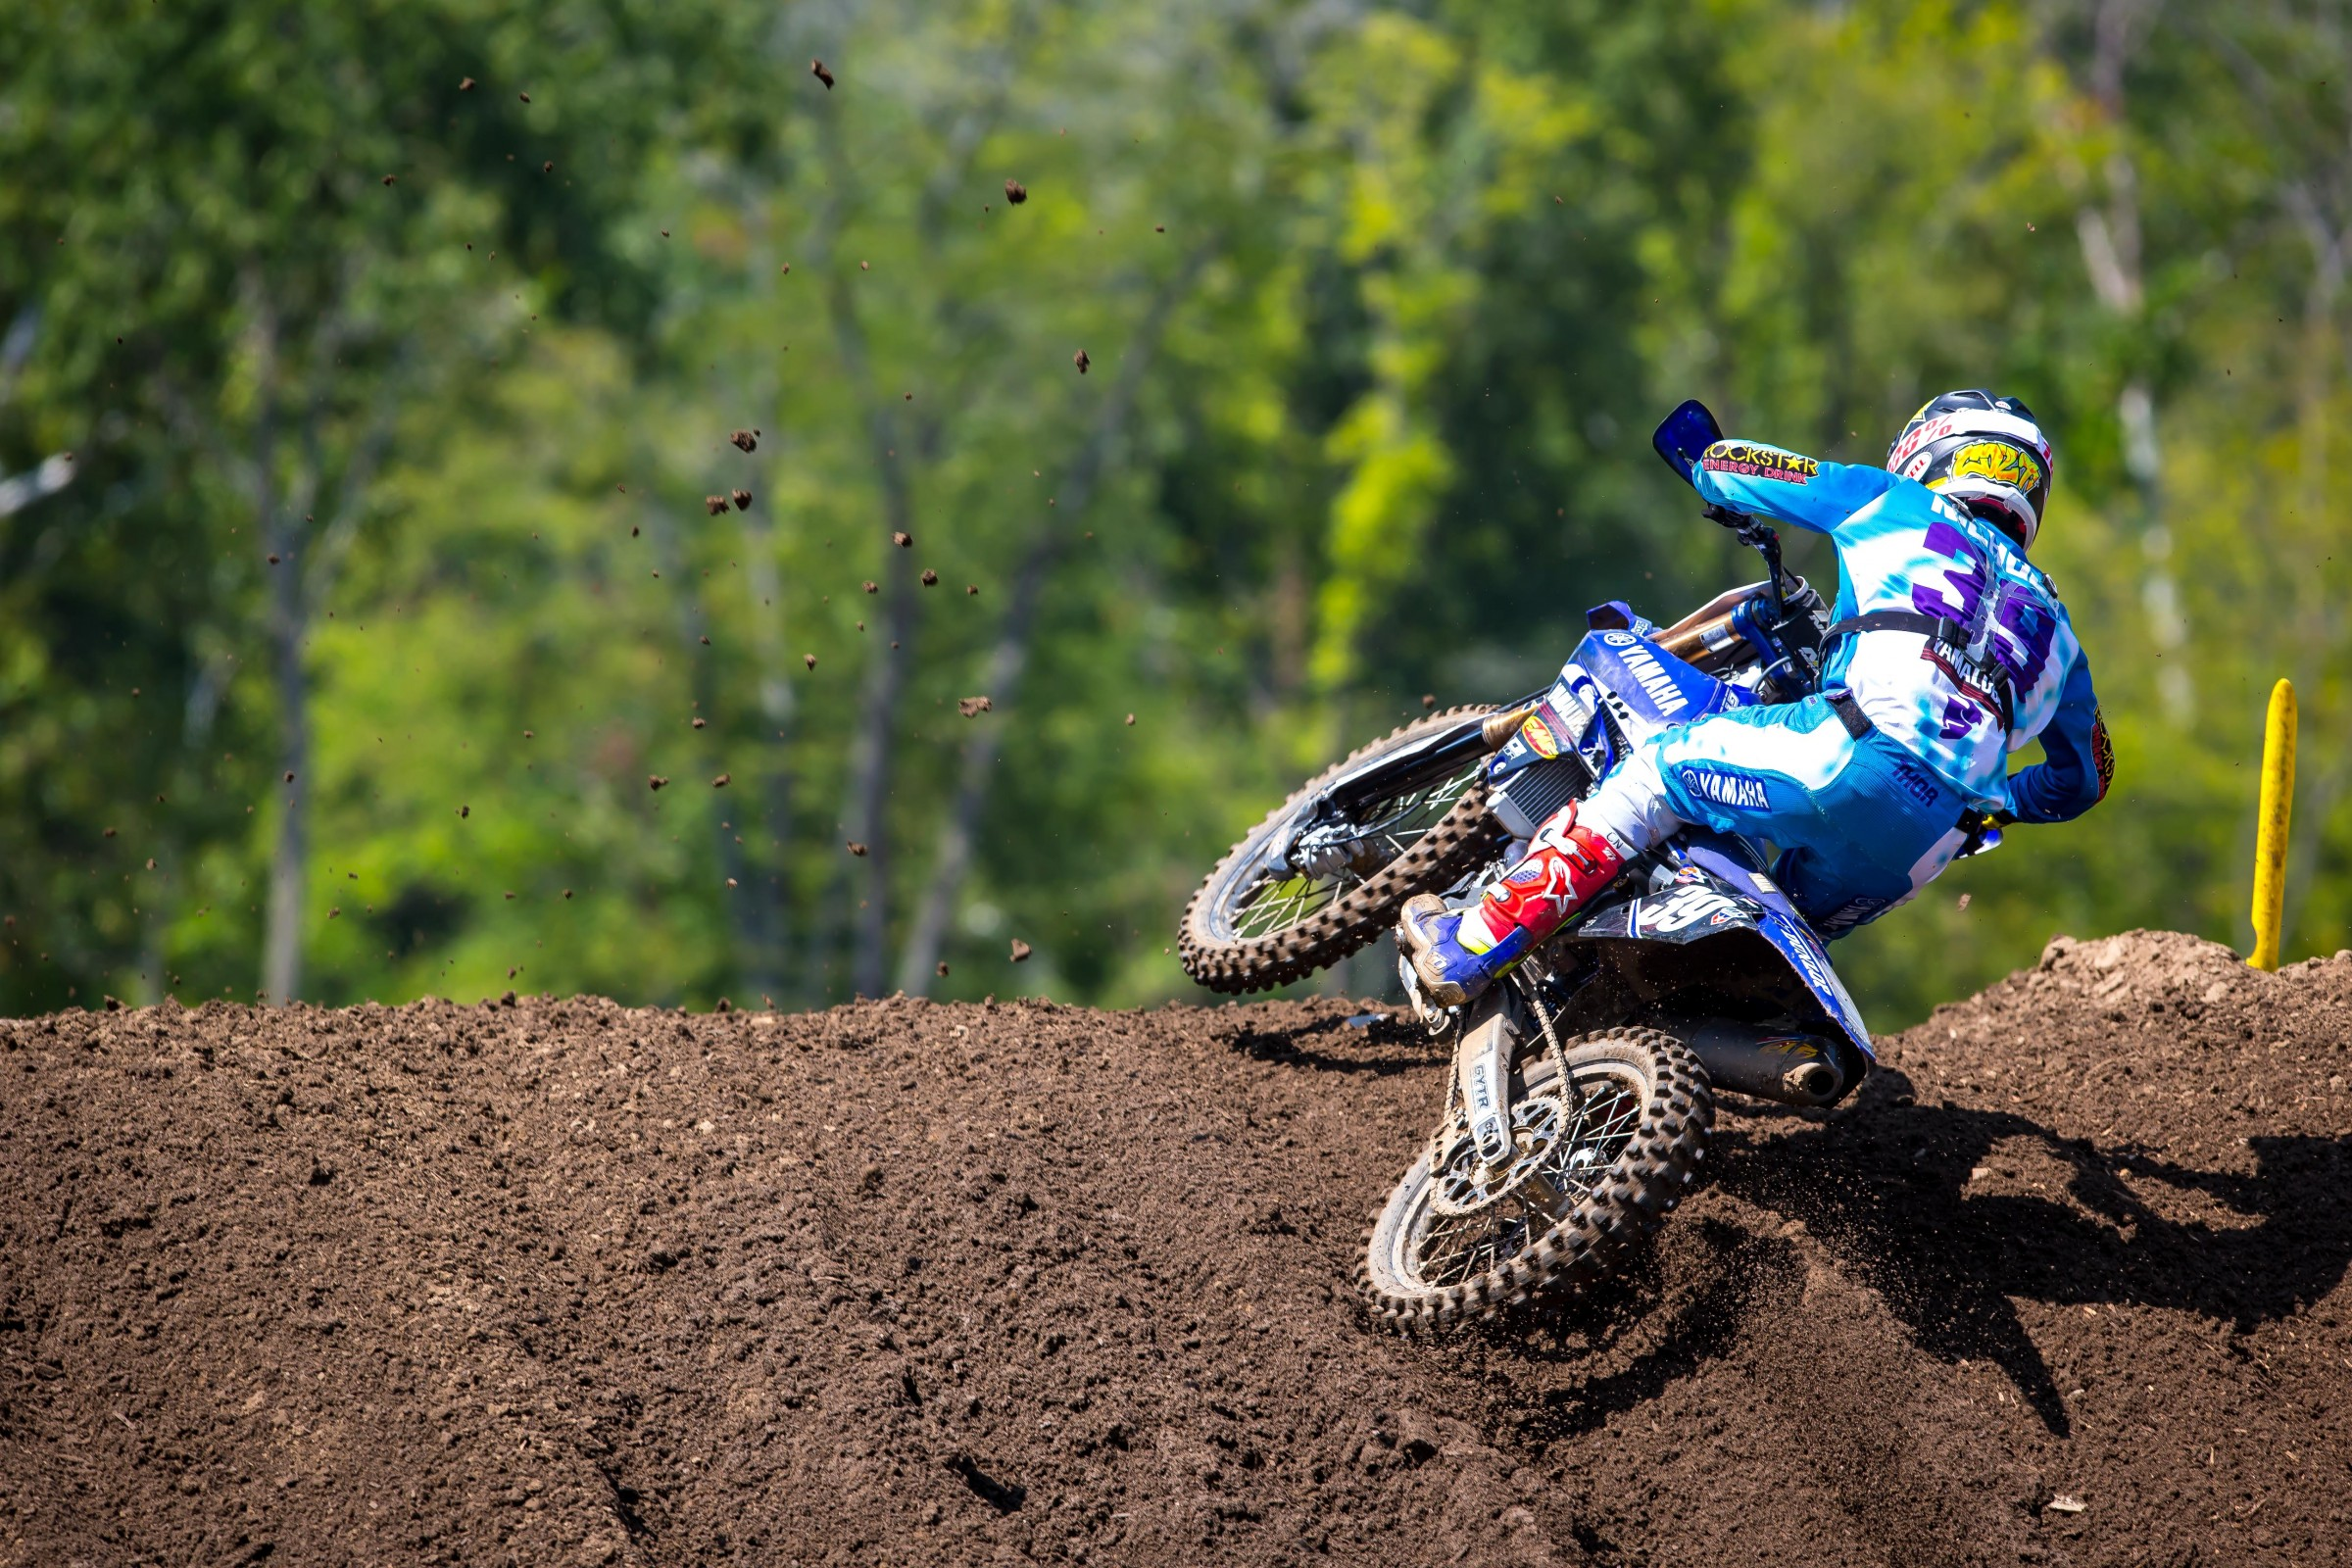 Nichols earned his best career finish at a round of Lucas Oil Pro Motocross with 3-4 scores being good enough for third overall.